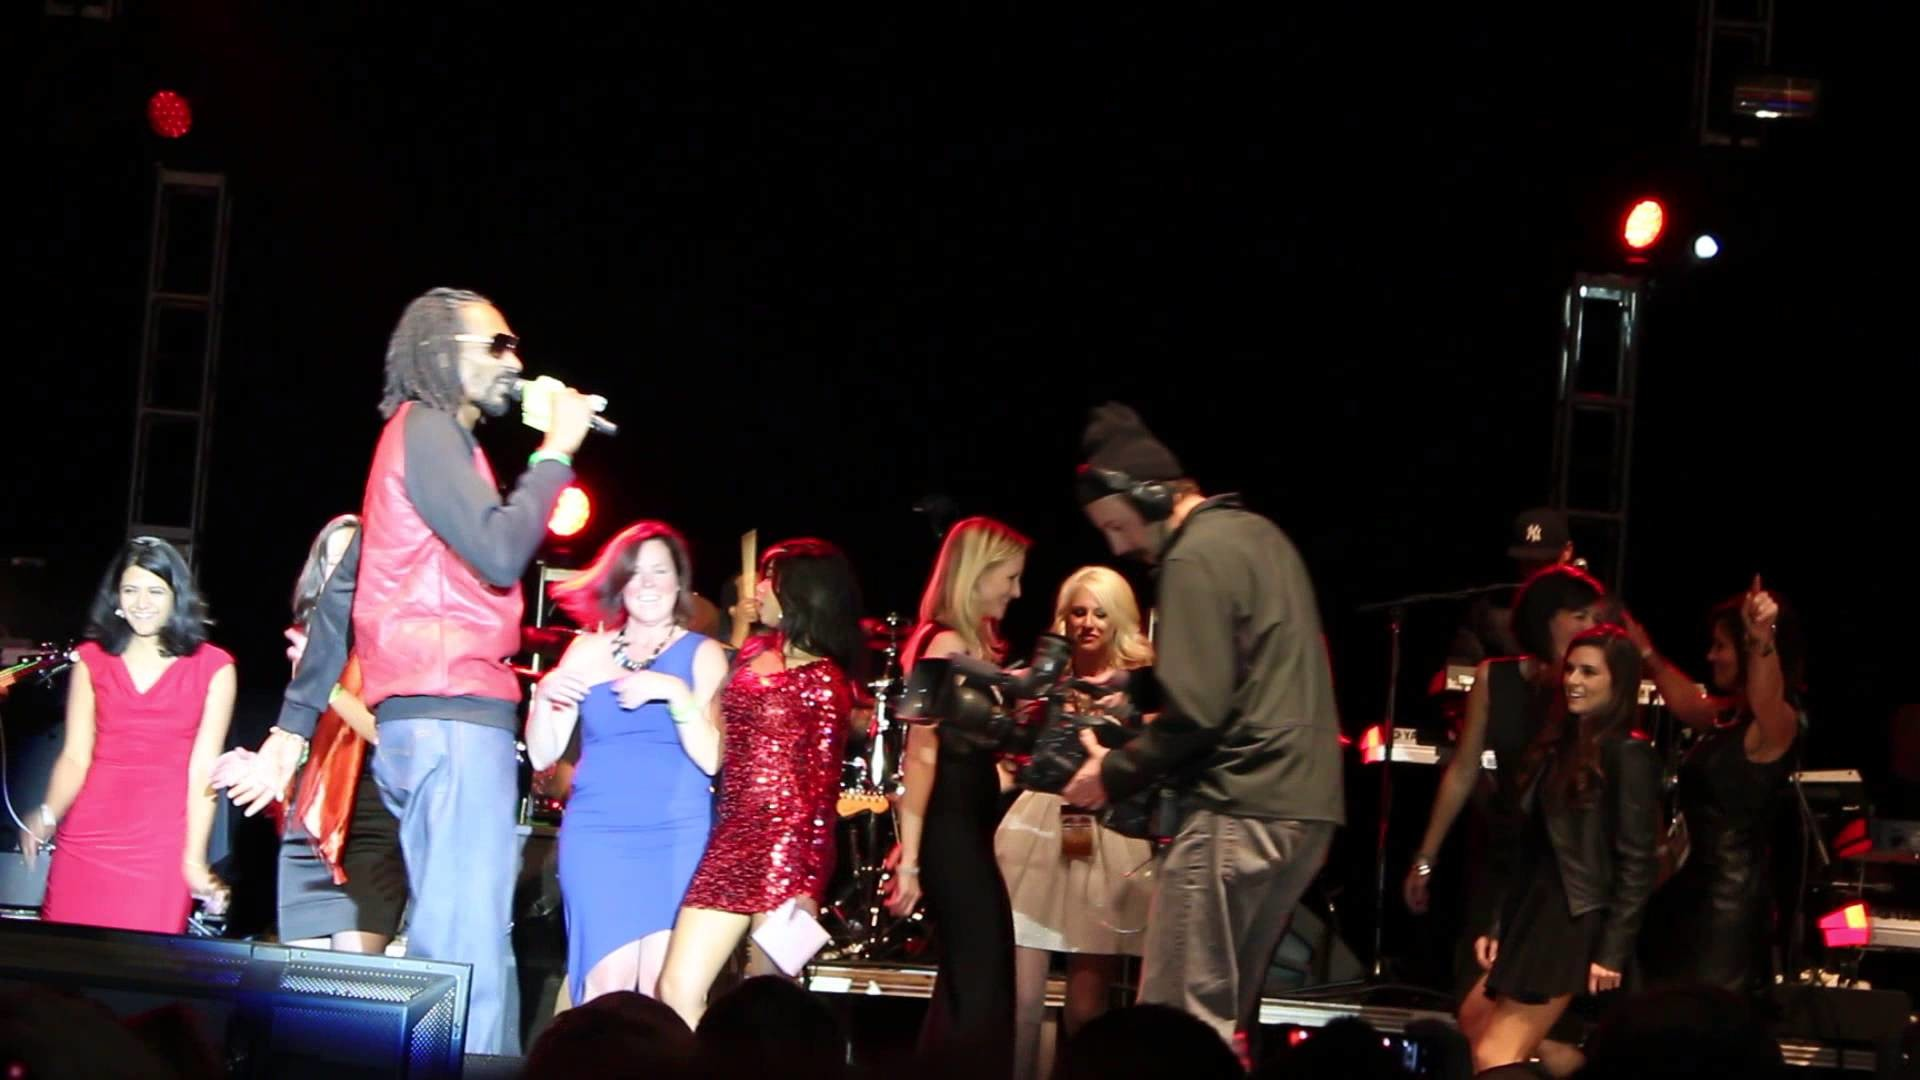 Snoop Dog – Danica Patrick – Favorite Girl – Go Daddy Holiday Party 2013